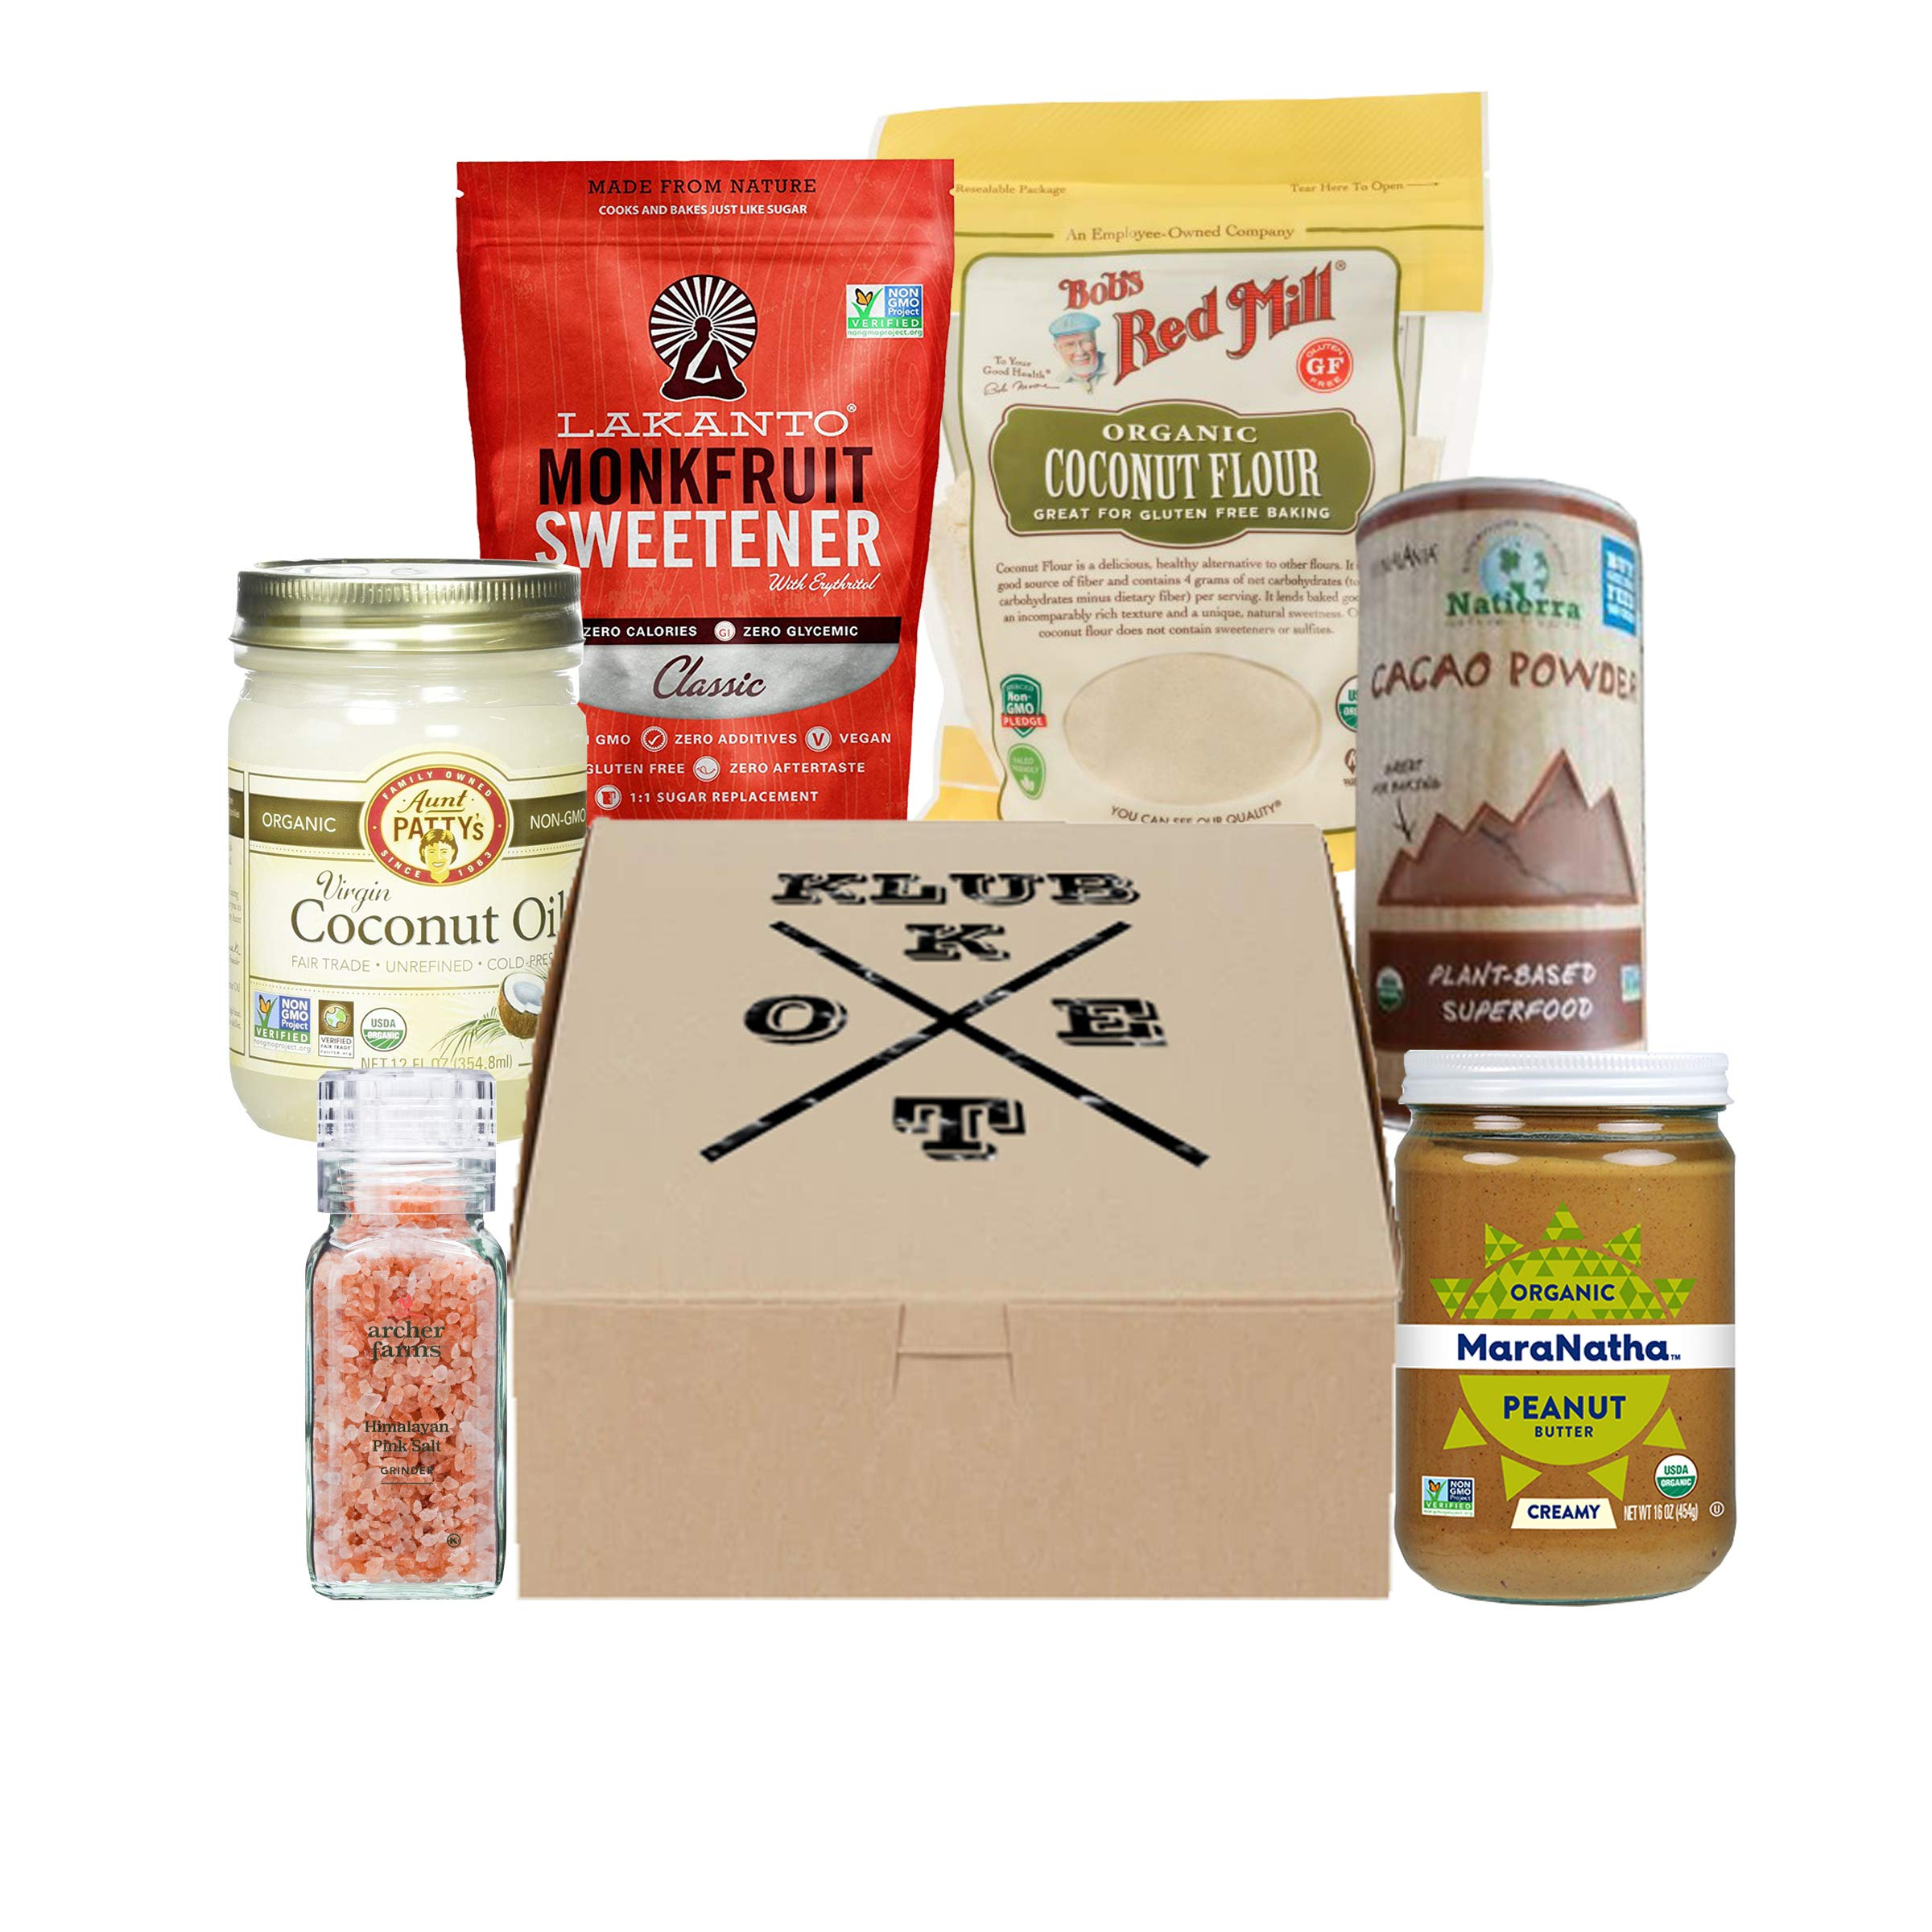 Keto Klub Pantry Box with Almond Meal, Caocao Powder, Monkfruit Sweetener, Coconut Oil and more for cooking essentials (Pantry)